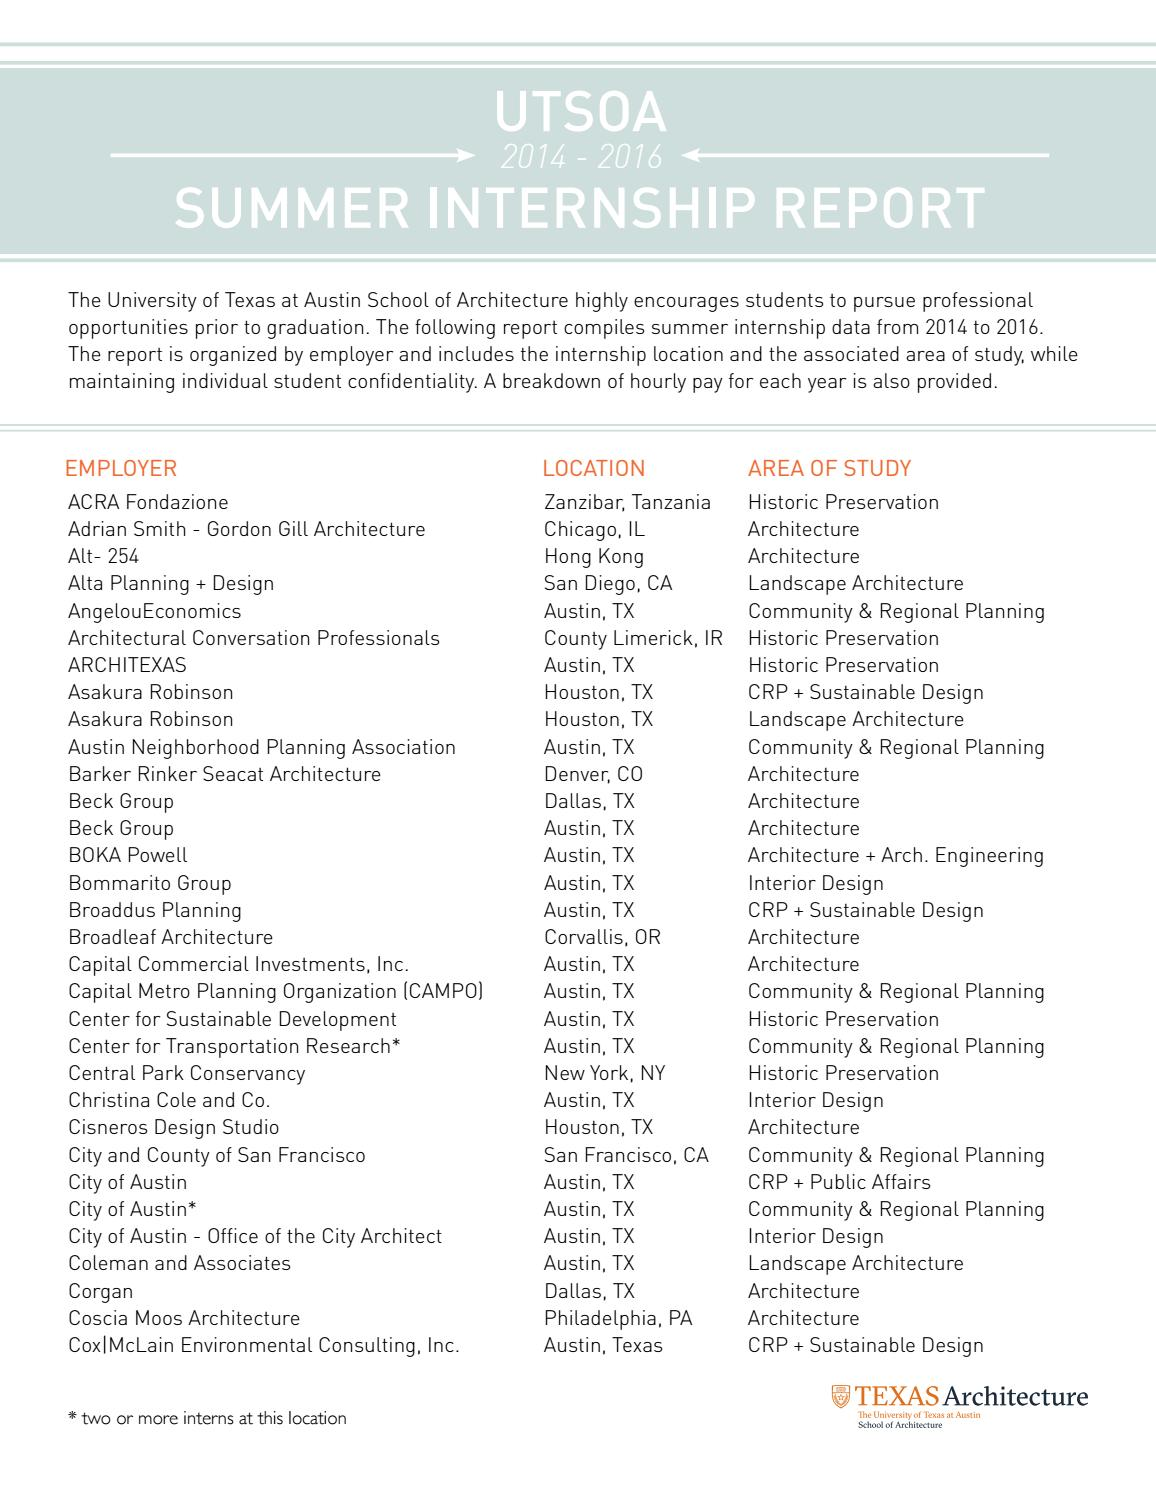 Summer Internship Report 2014 2016 By Ut School Of Architecture Issuu